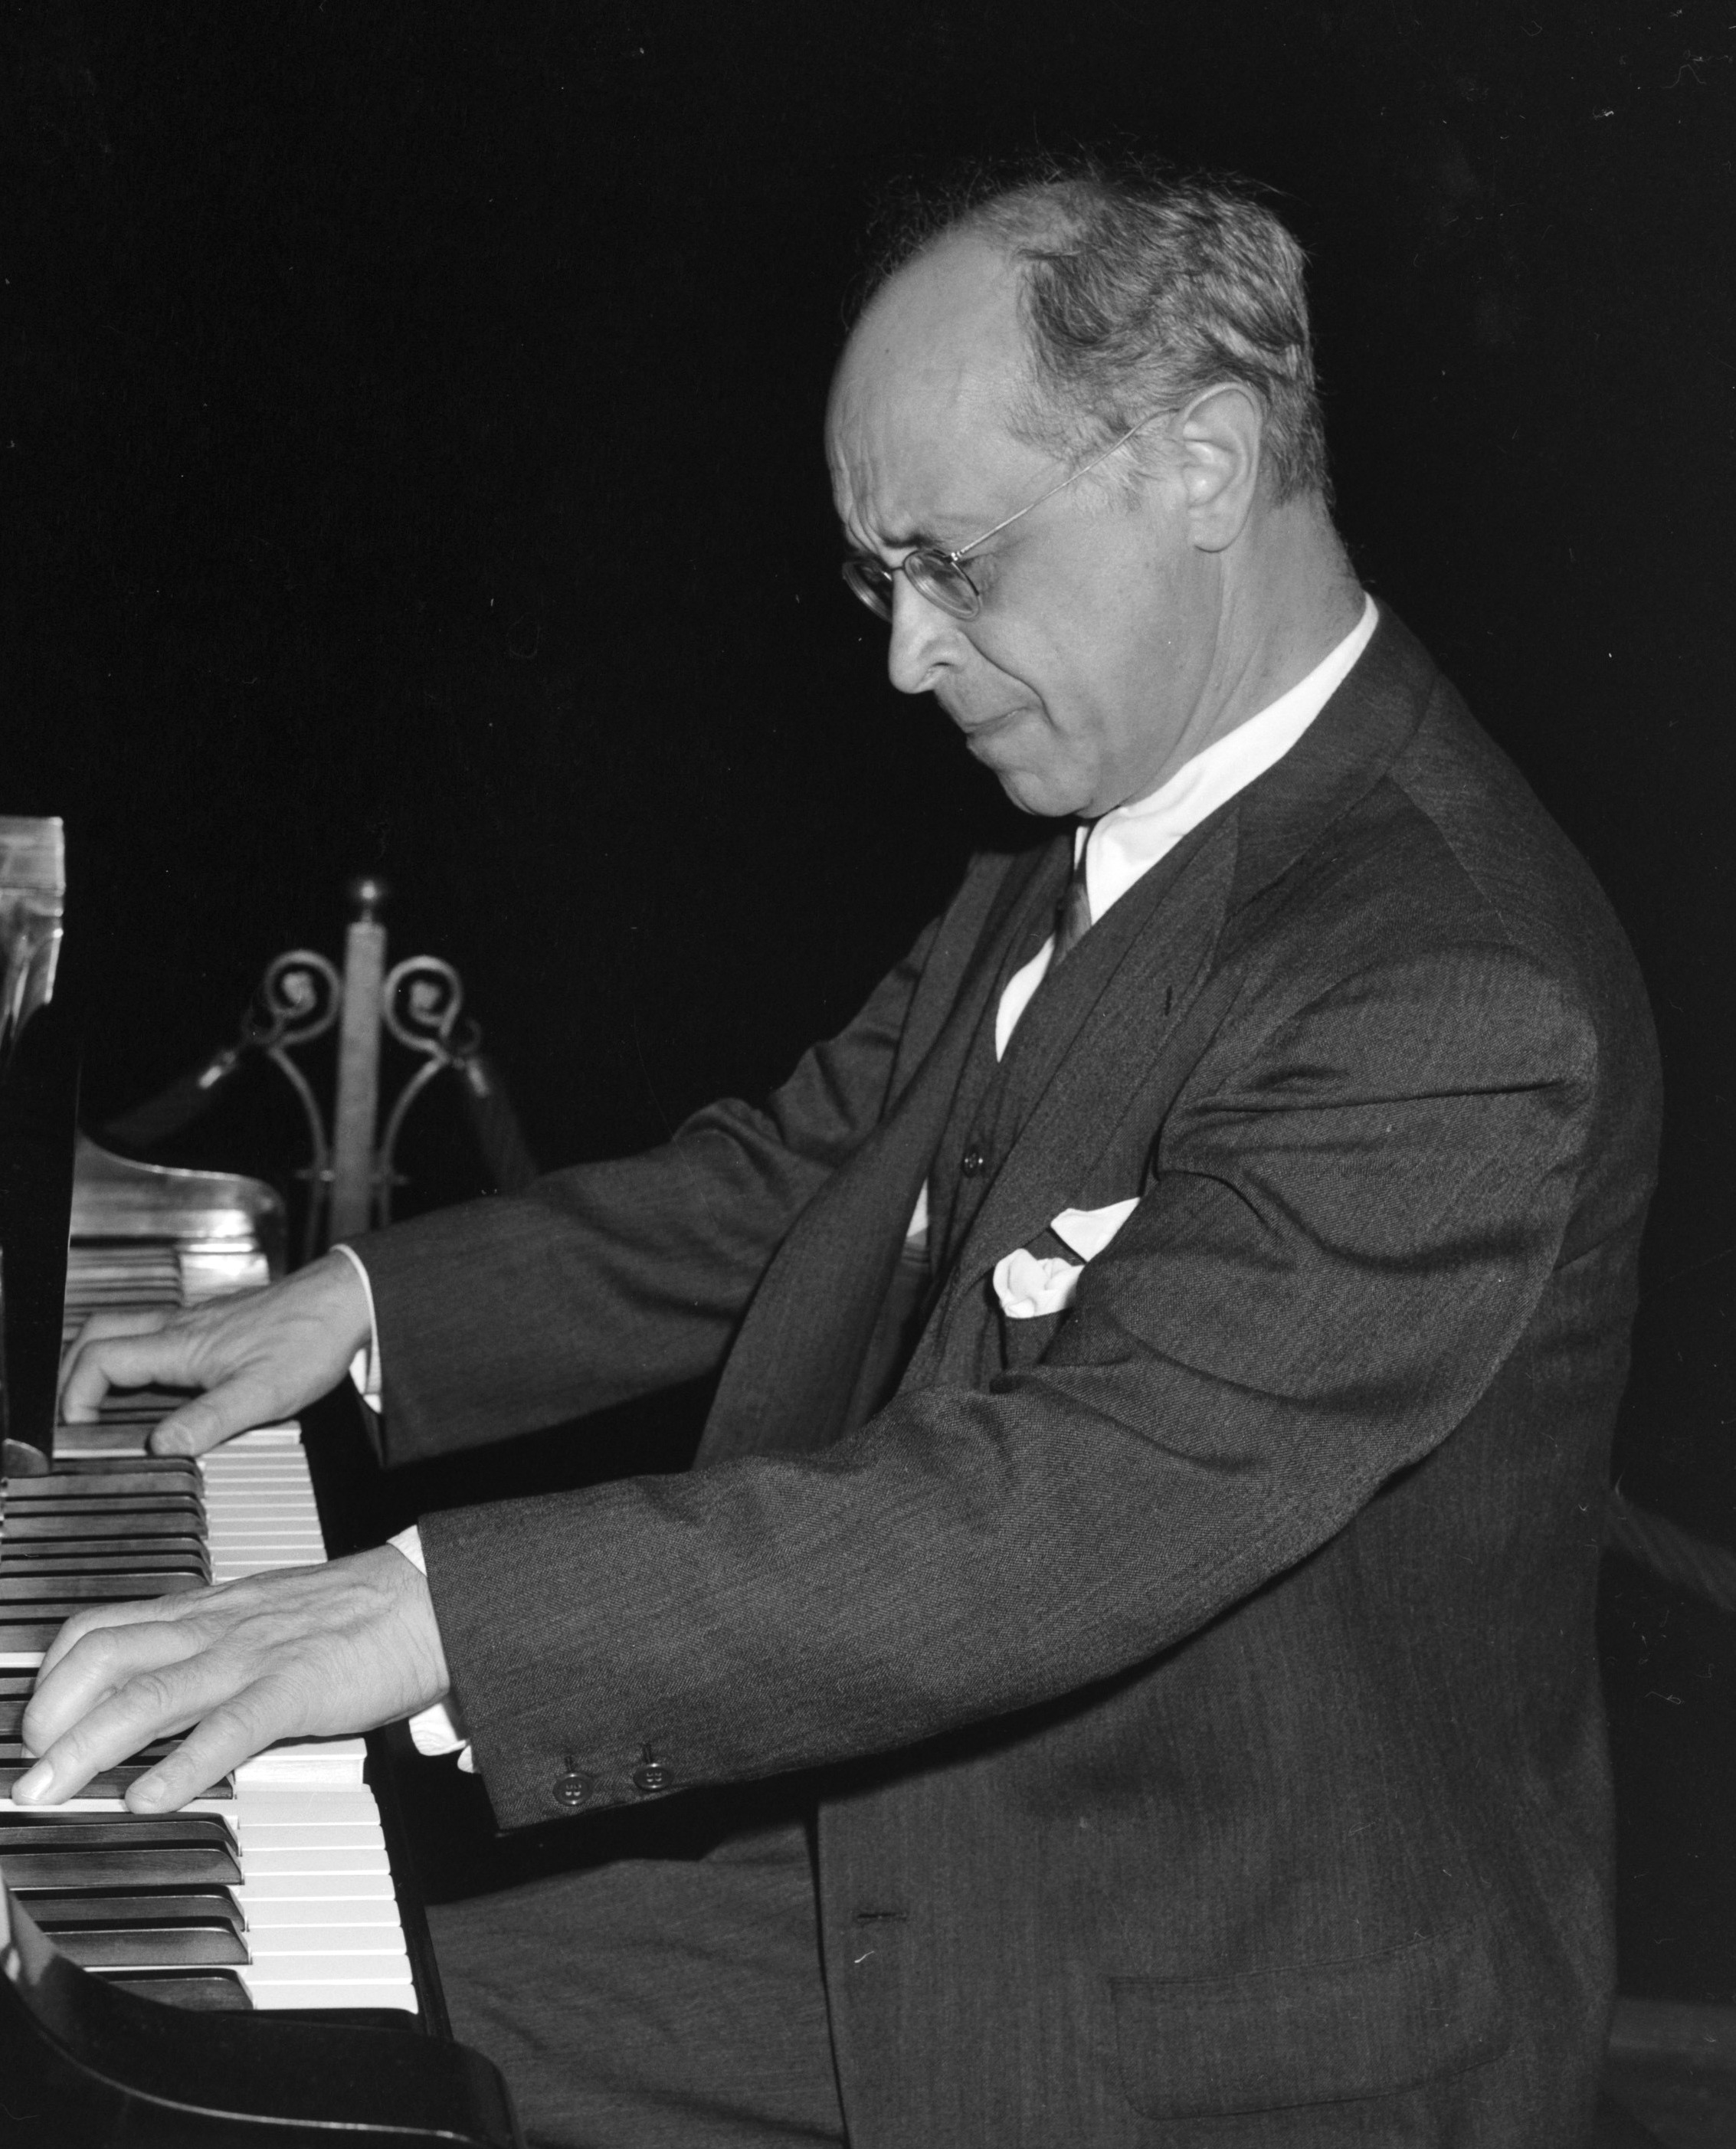 Biography of Rudolf Serkin